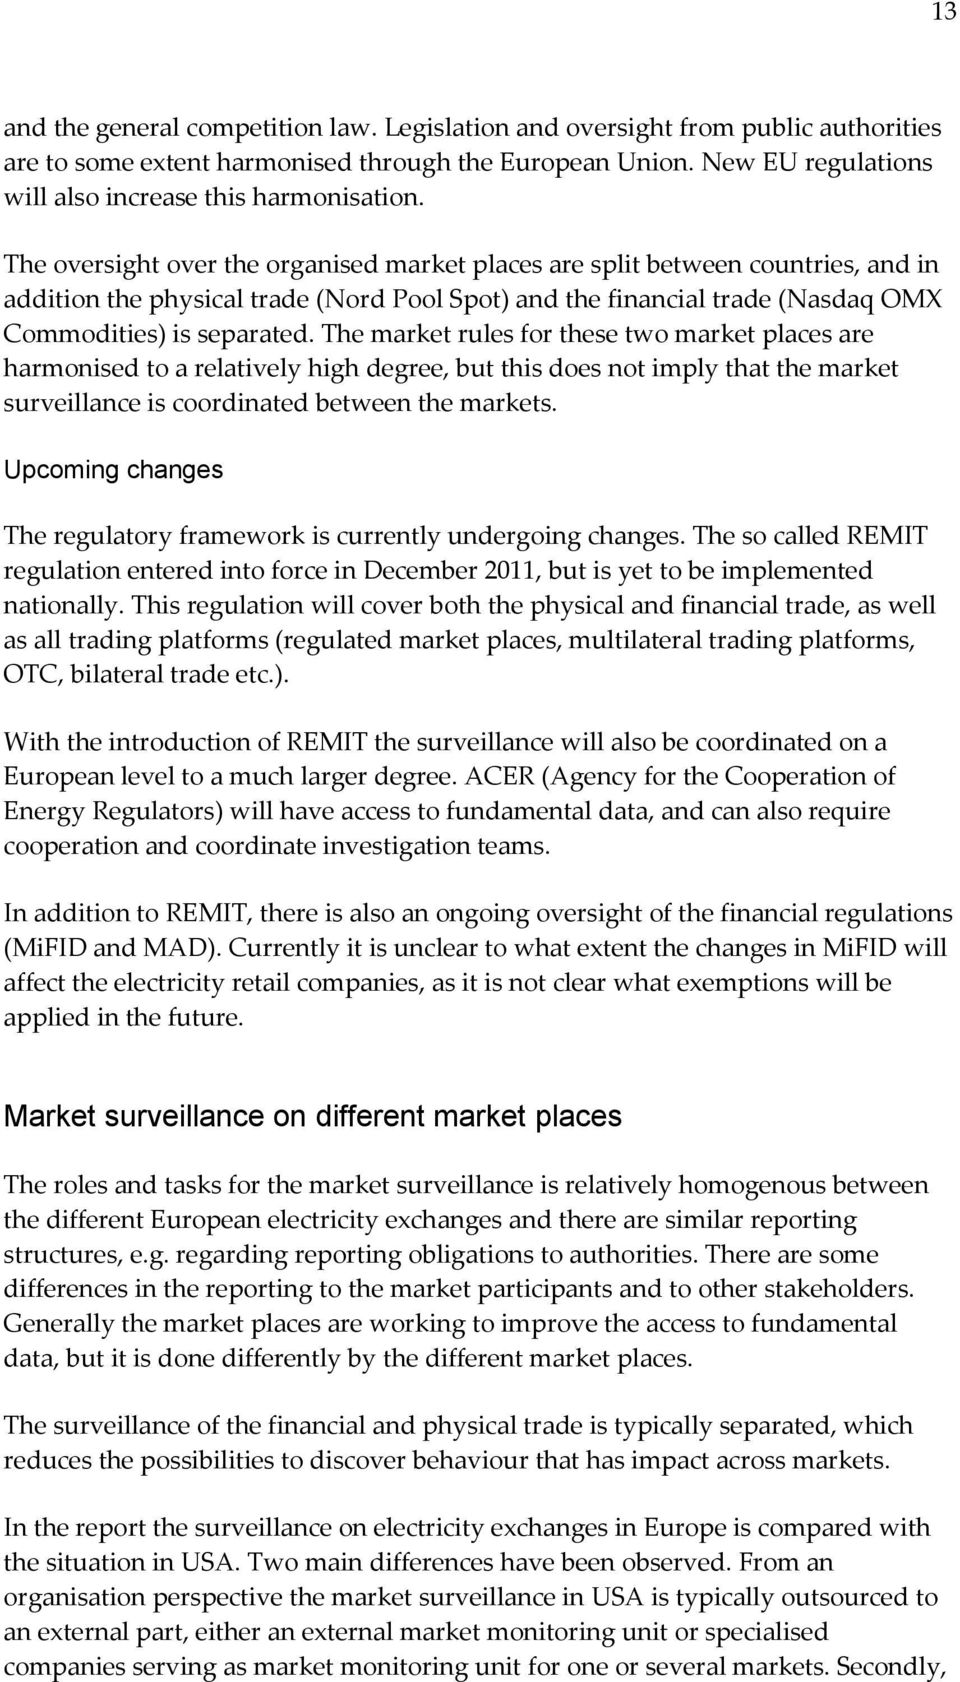 The oversight over the organised market places are split between countries, and in addition the physical trade (Nord Pool Spot) and the financial trade (Nasdaq OMX Commodities) is separated.